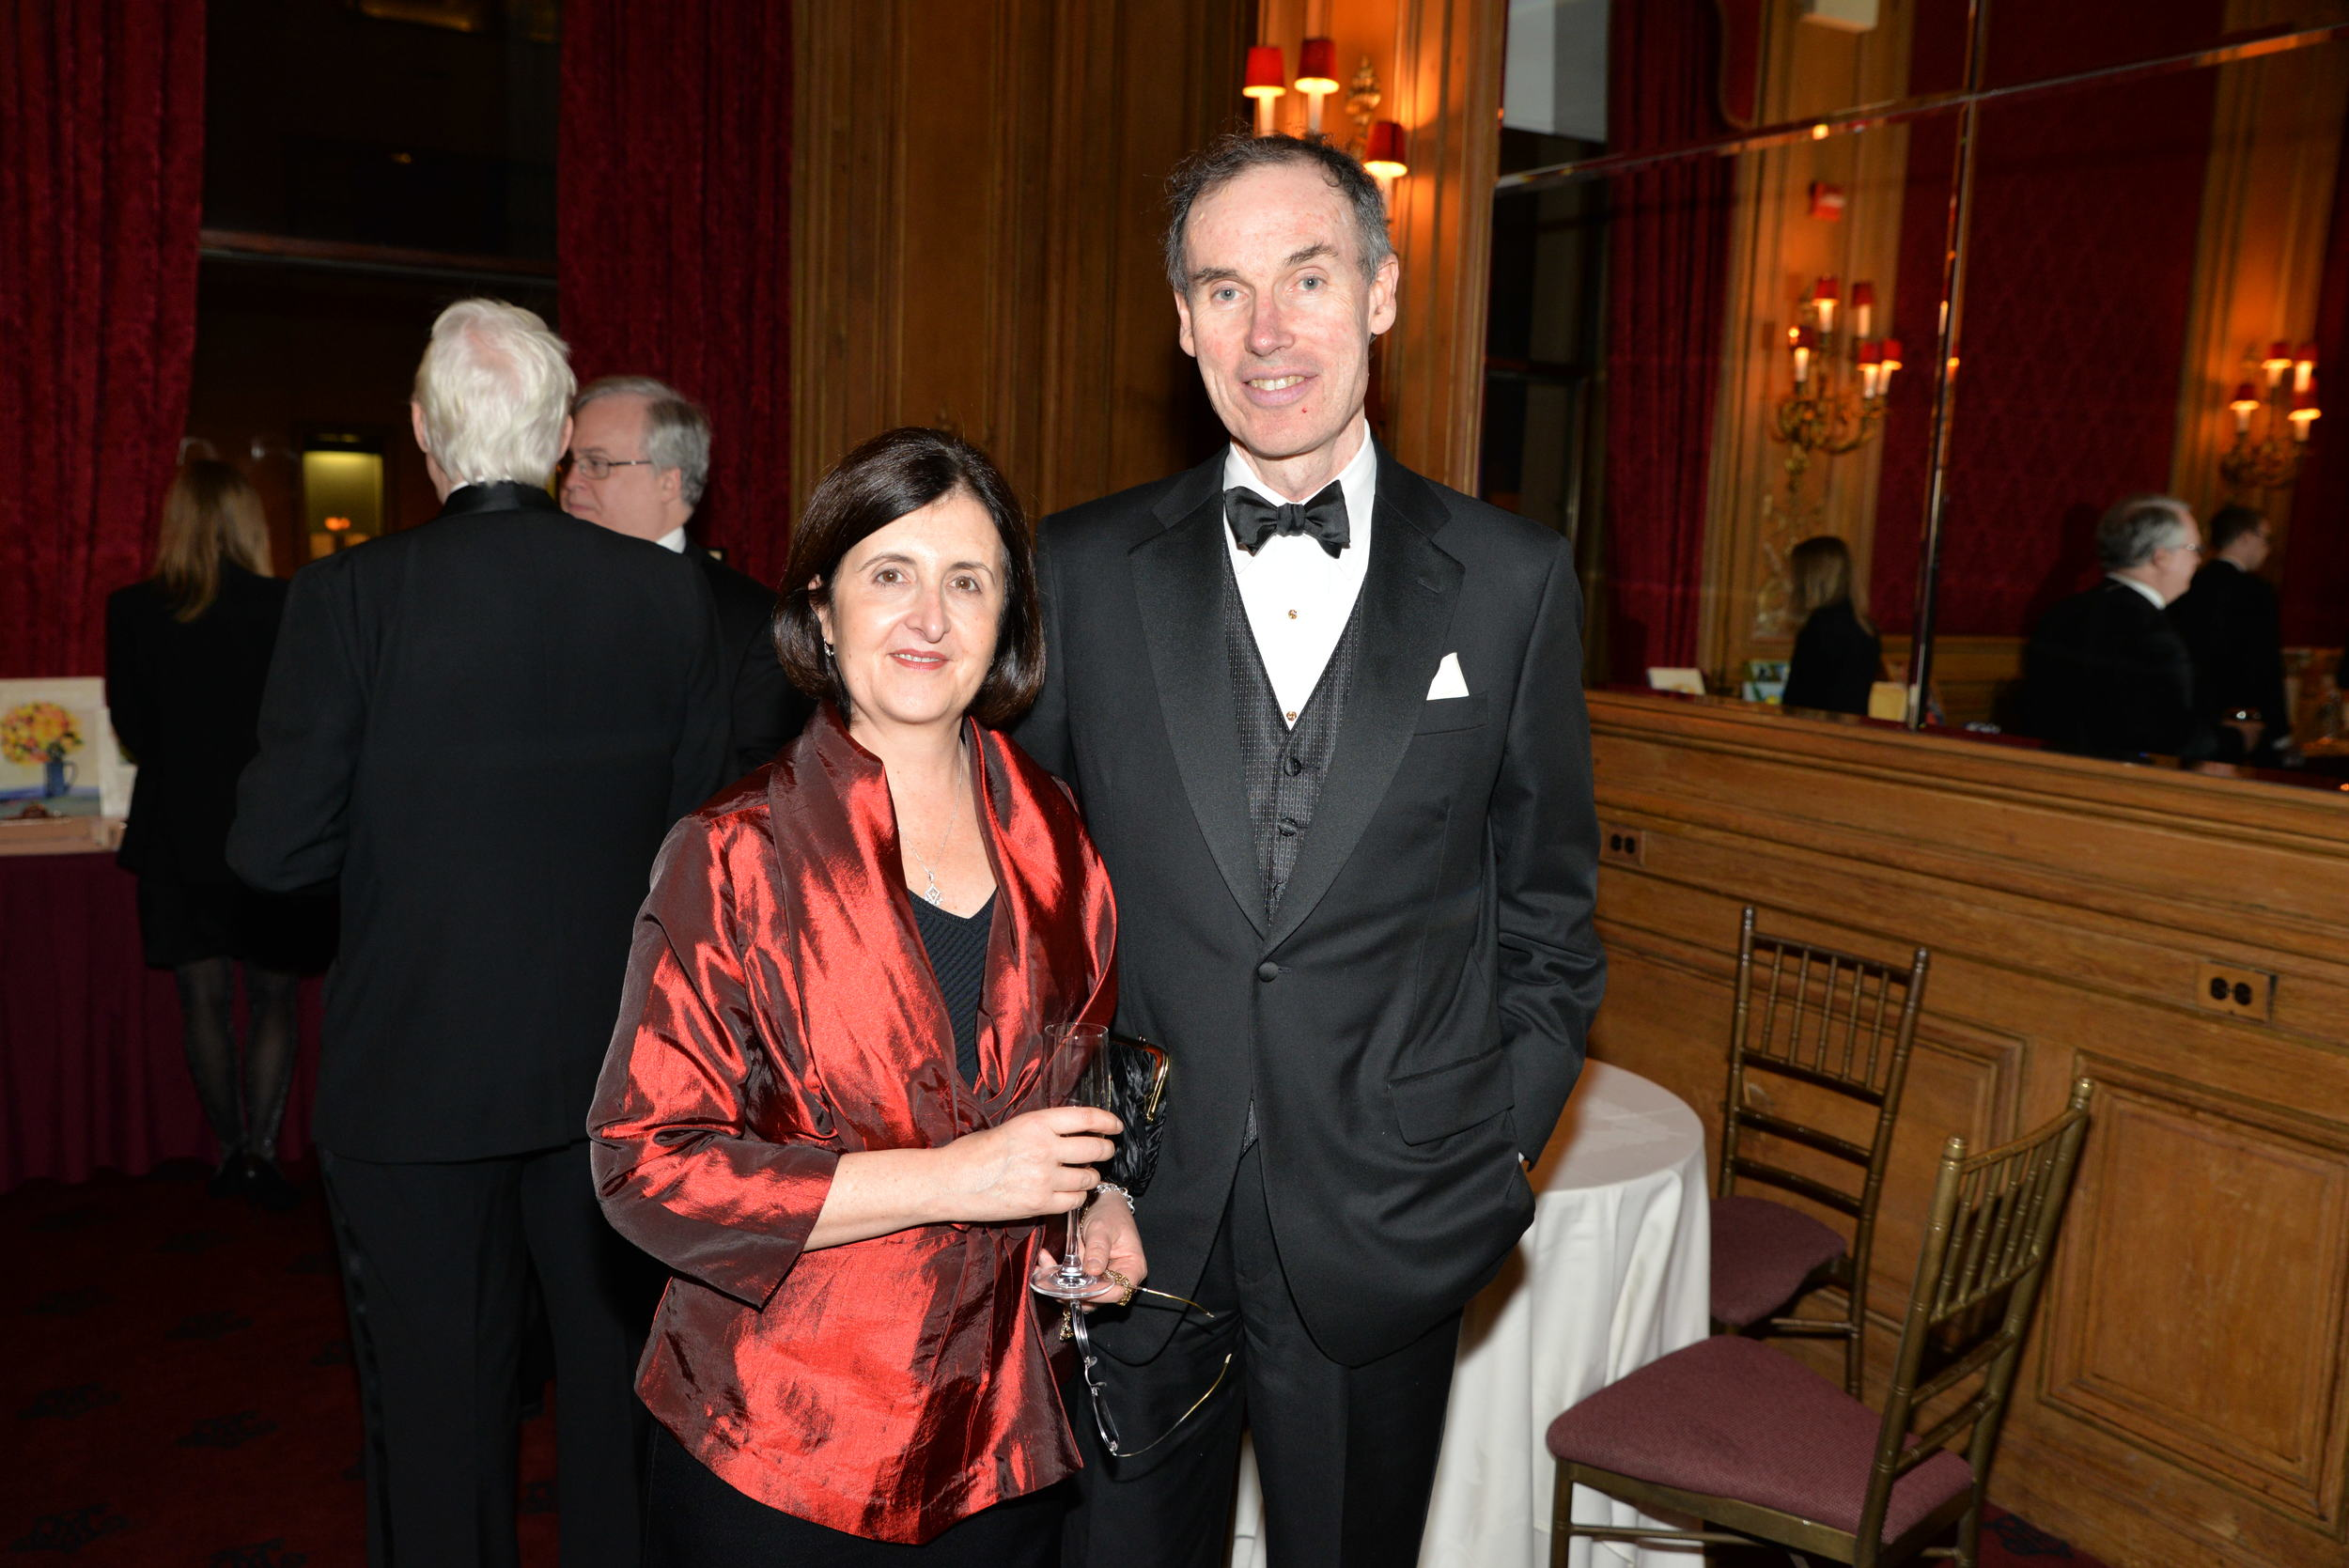 DSC_3475-Rita Murray, Robert Murray.JPG